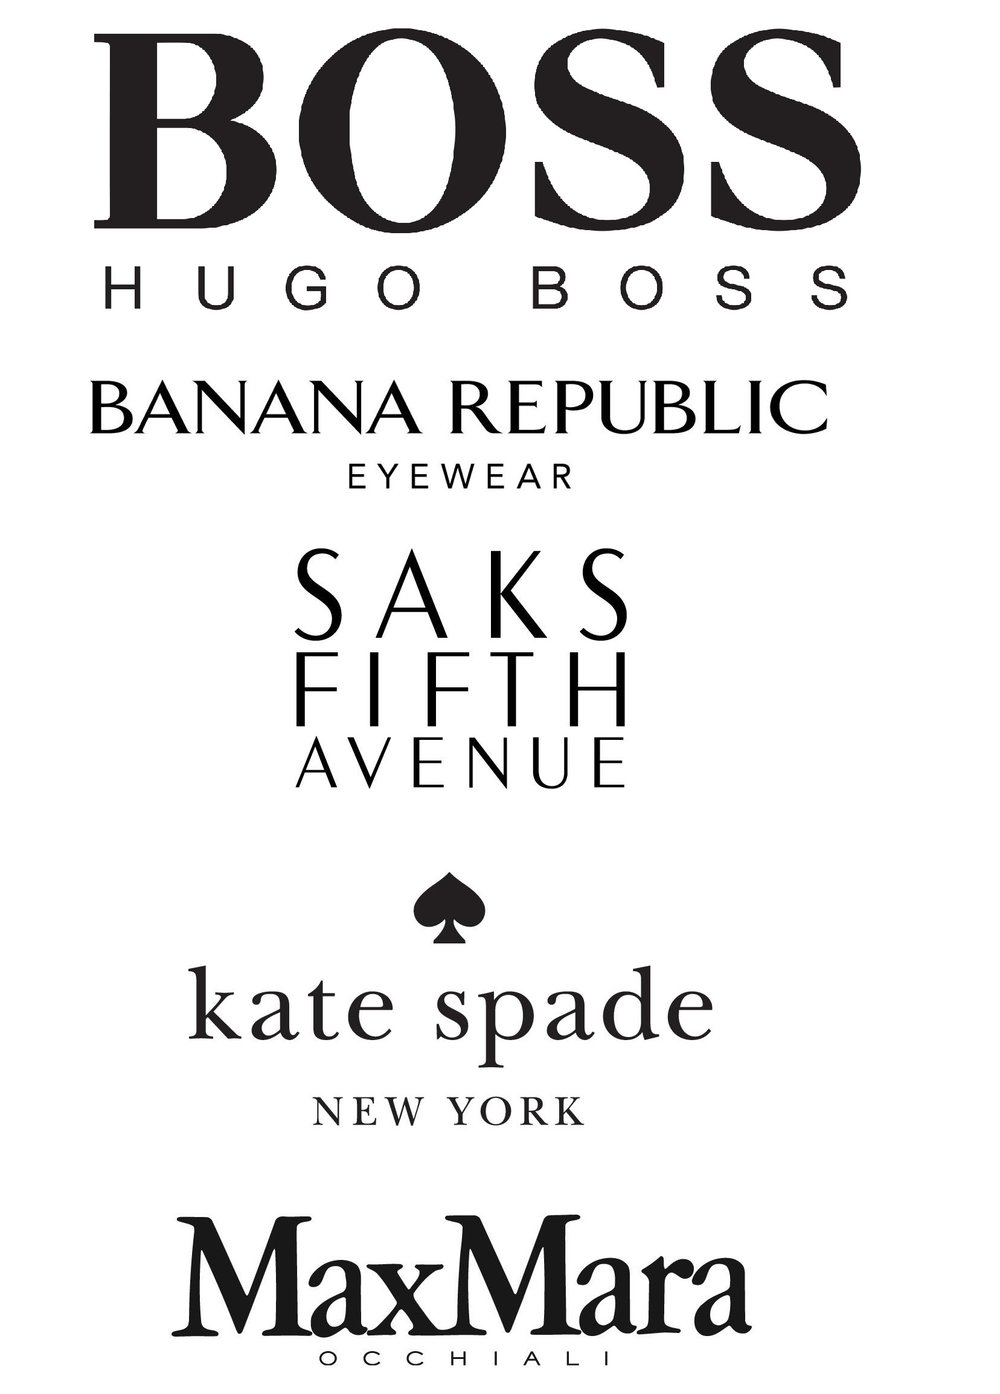 Hugo Boss, Banana Republic, Saks Fifth Avenue, Kate Spade, Max Mara